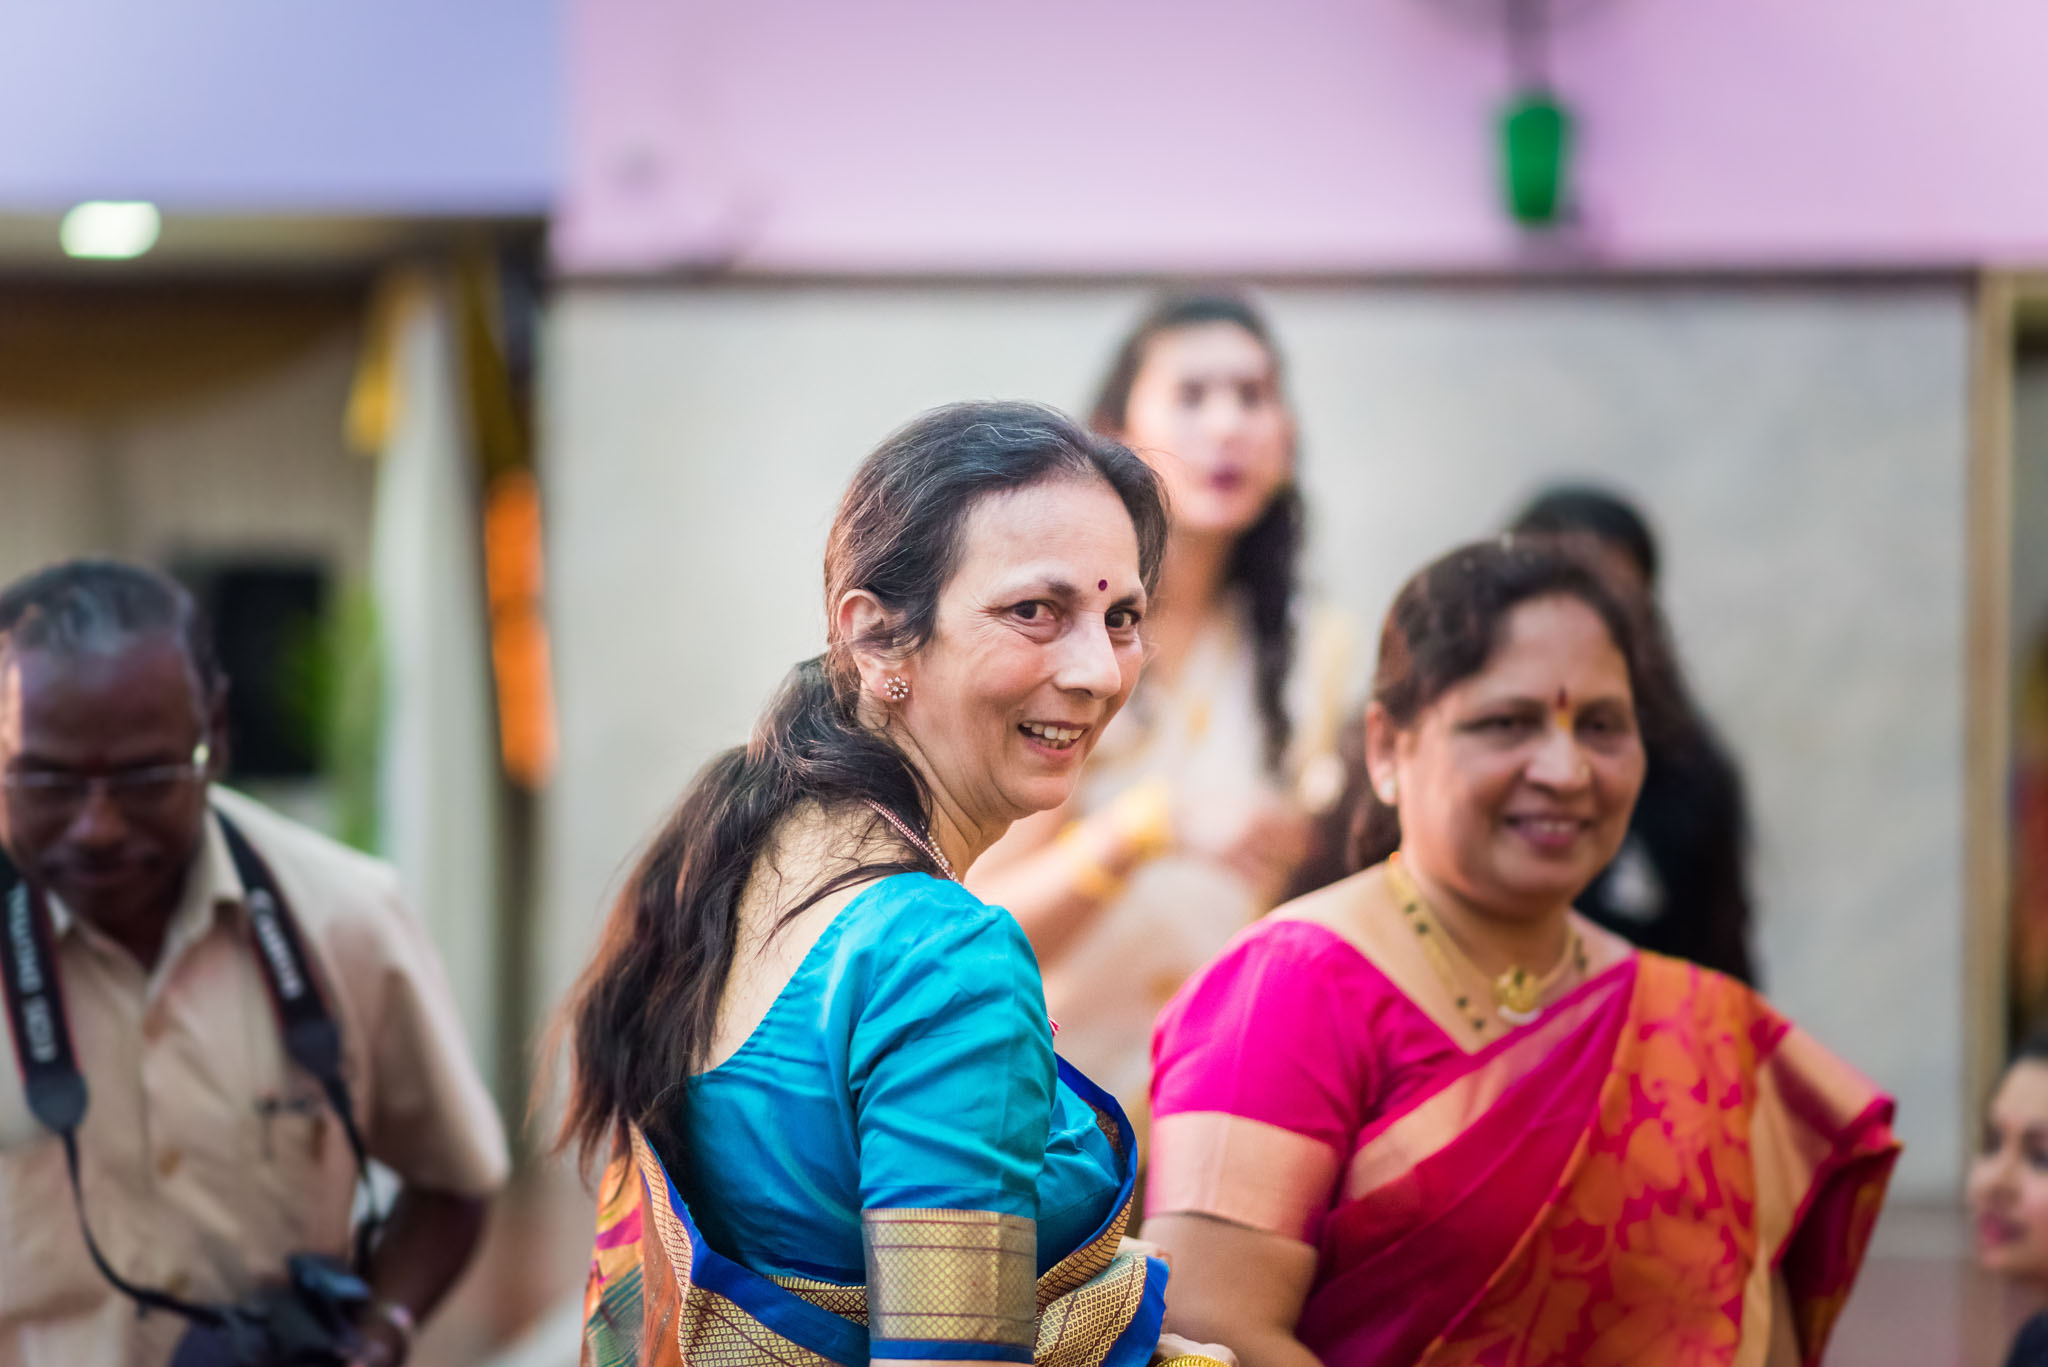 WhatKnot-Candid-Wedding-Photography-Mumbai-Bangalore-245